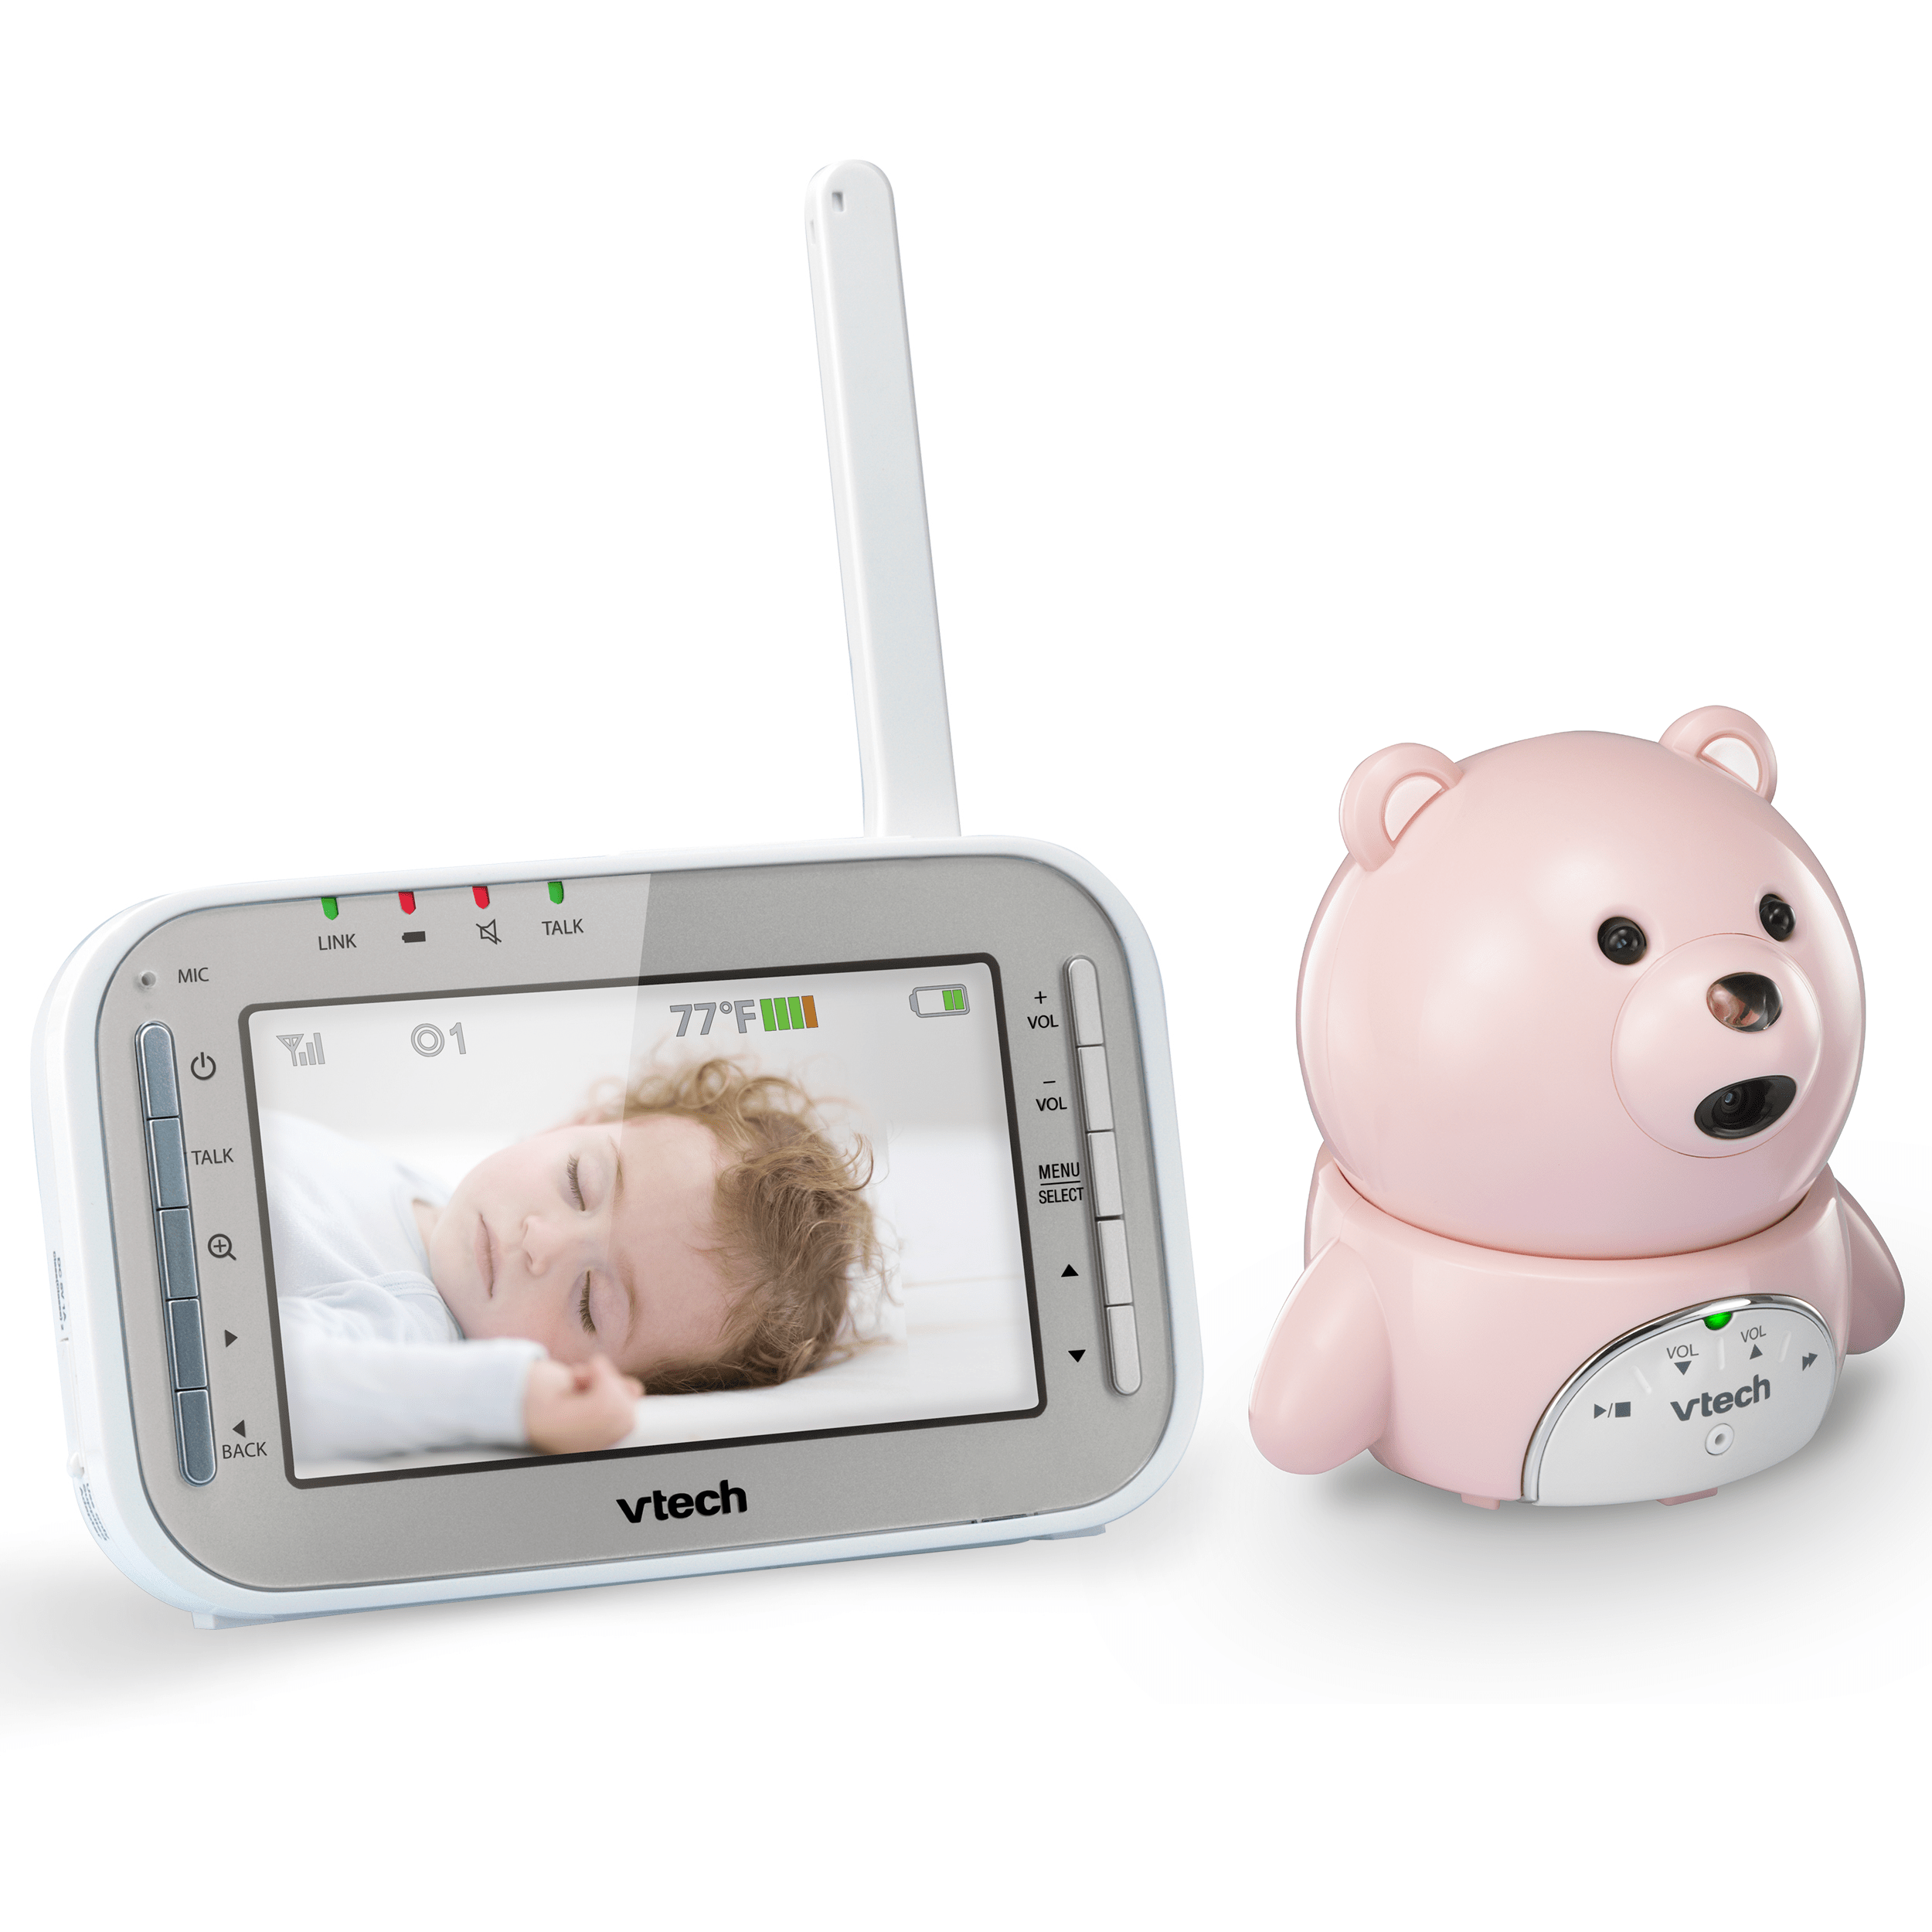 baby monitor bear expandable digital video baby monitor with automatic night vision vm346 19. Black Bedroom Furniture Sets. Home Design Ideas